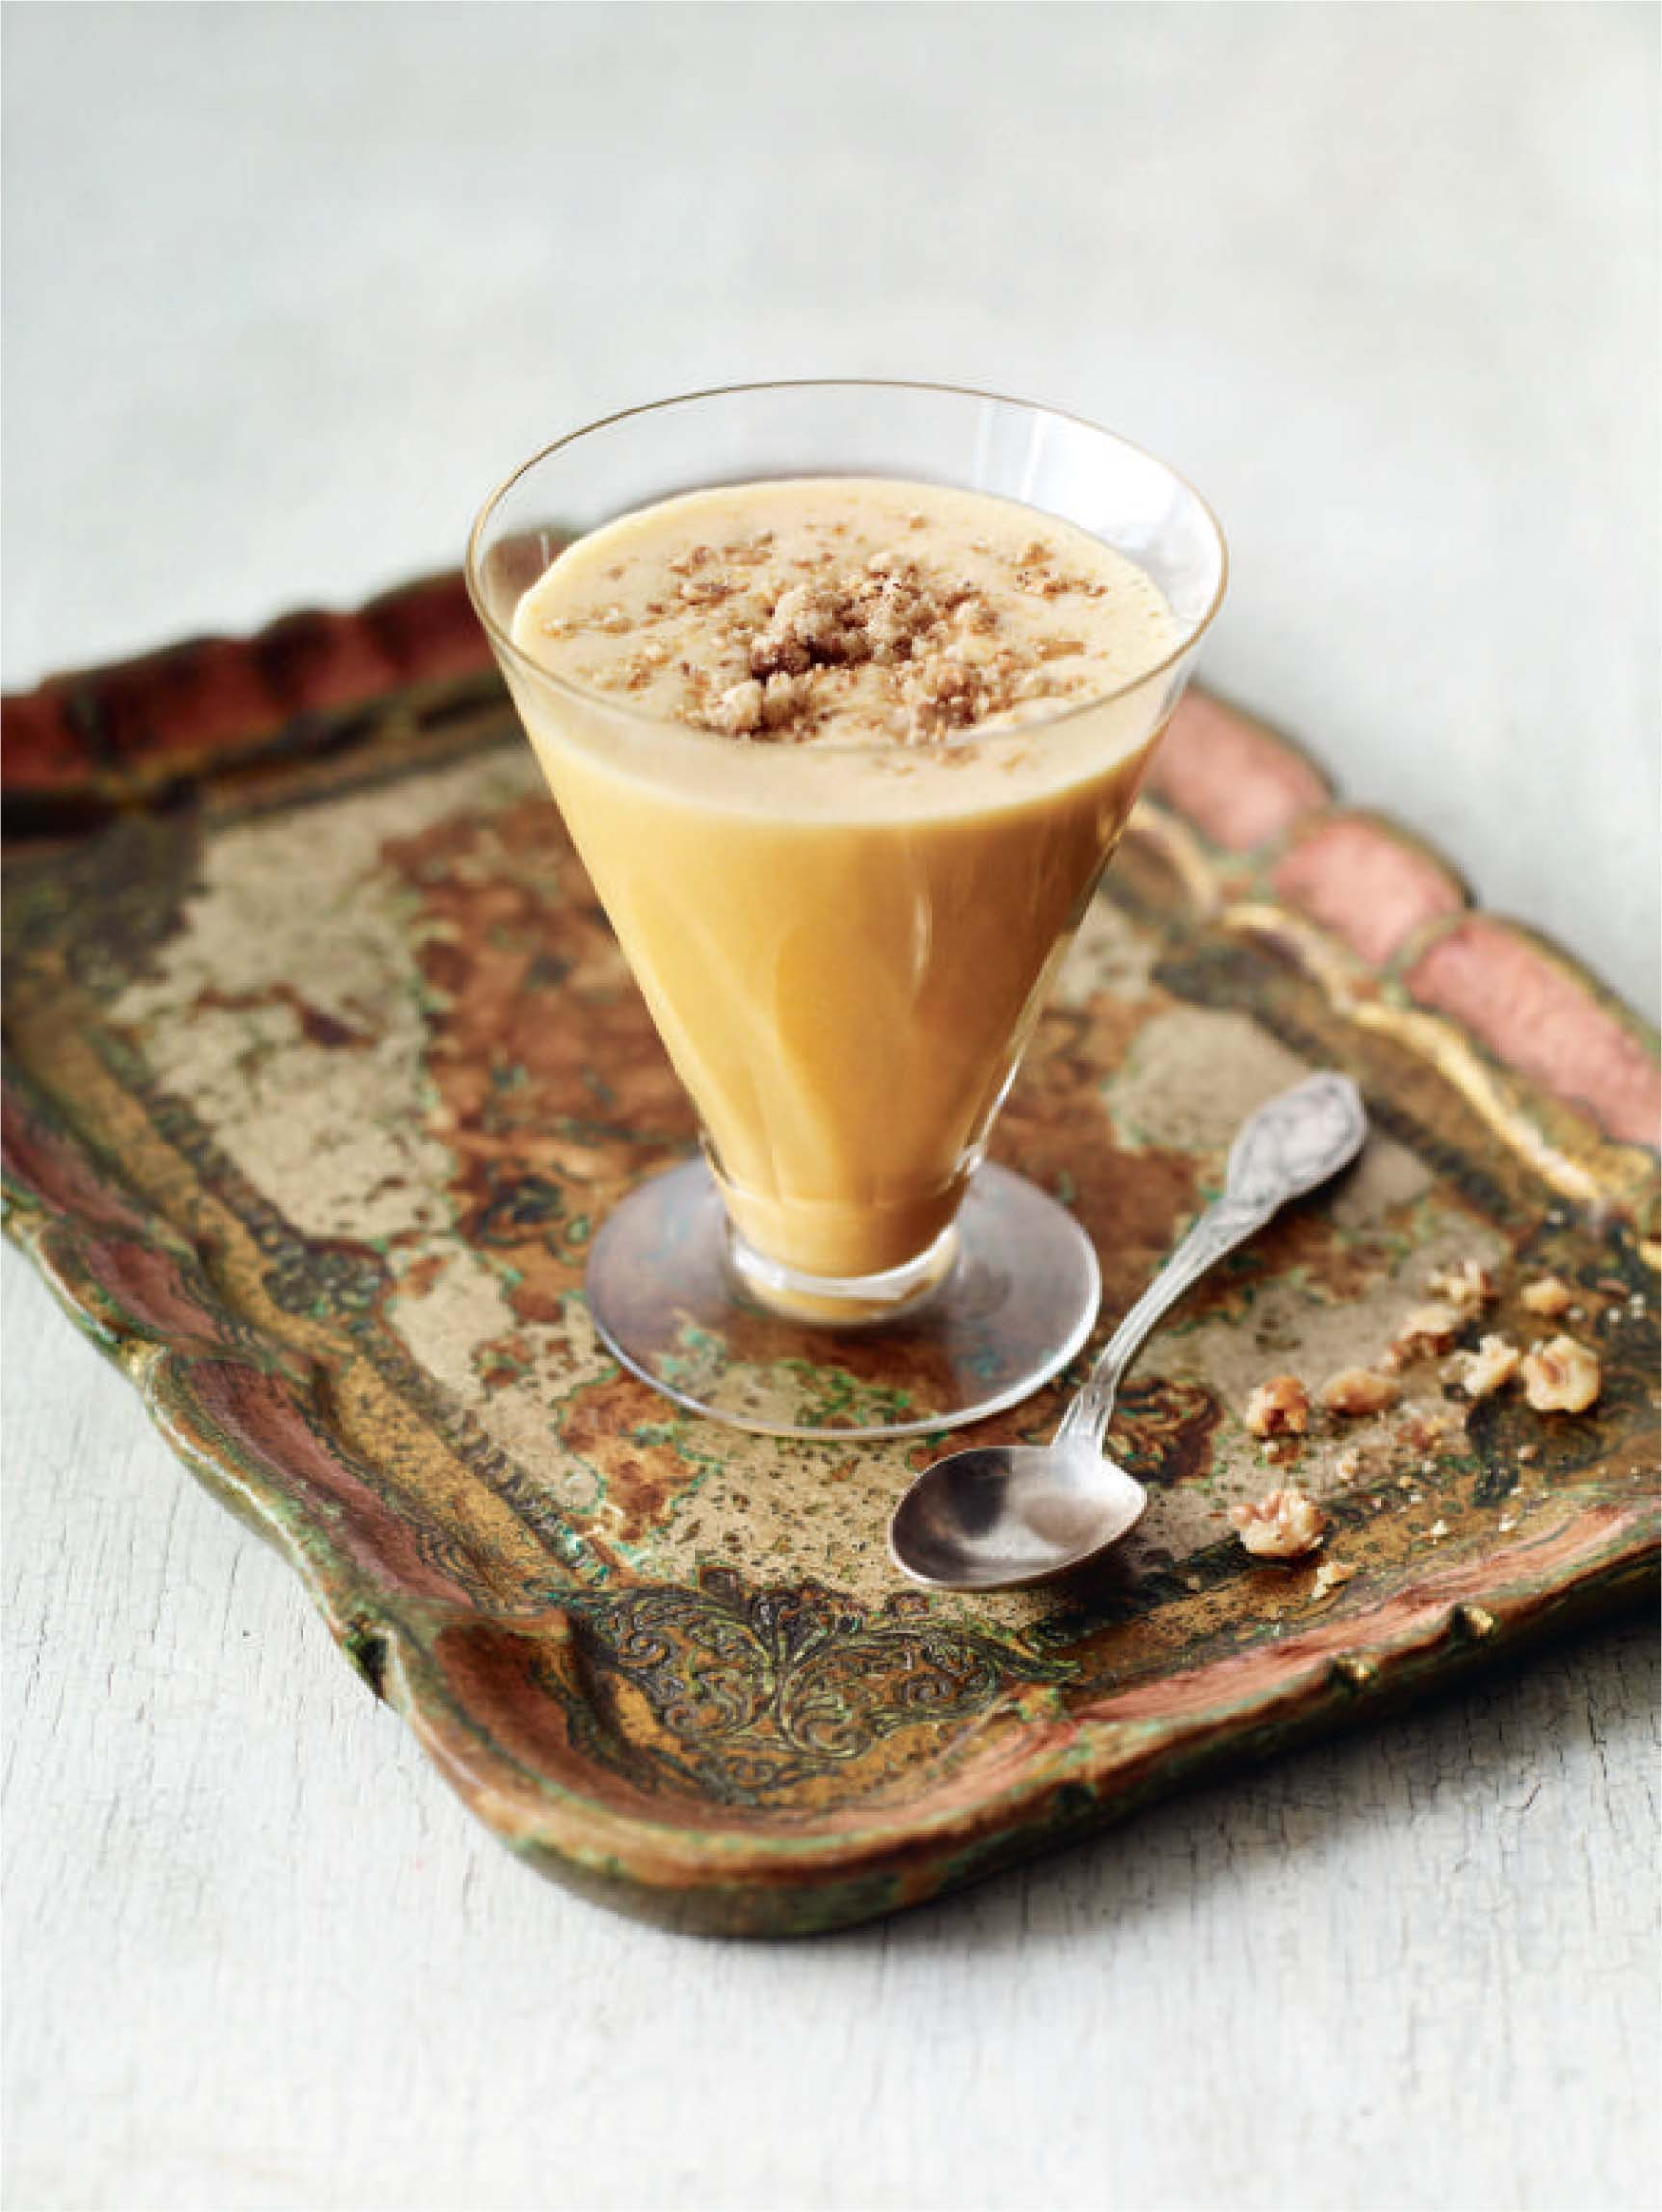 Caramel walnut mousse